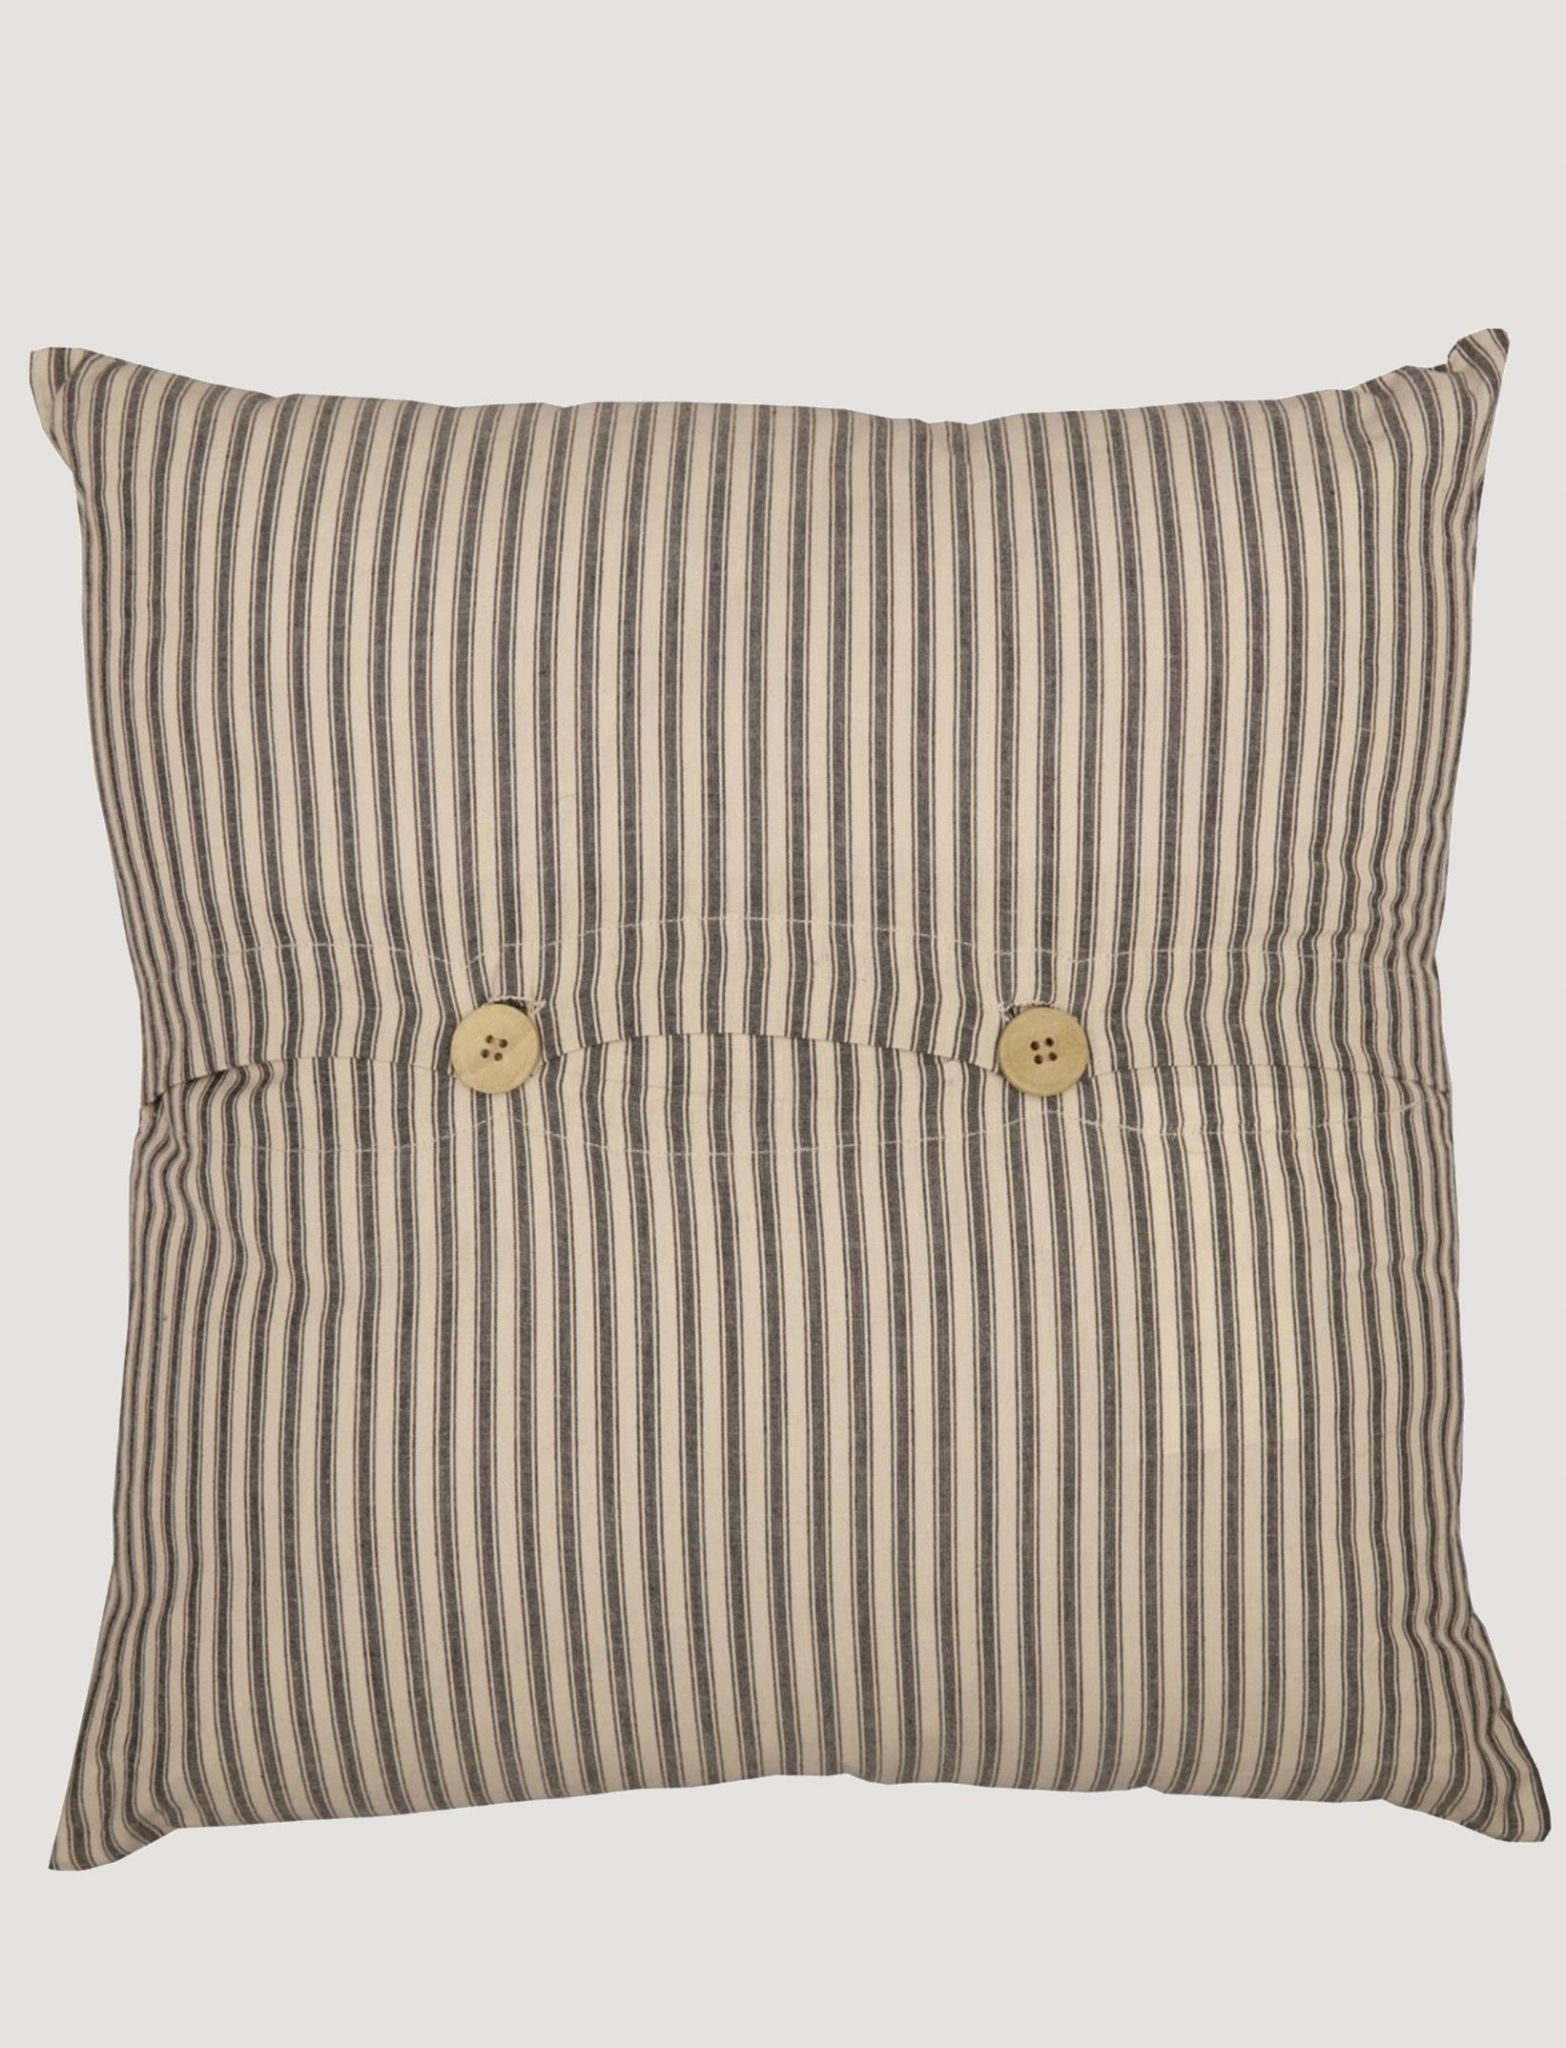 """VHC Brands Sawyer MIll Charcoal Harvest Festival Pillow 18""""x18"""""""